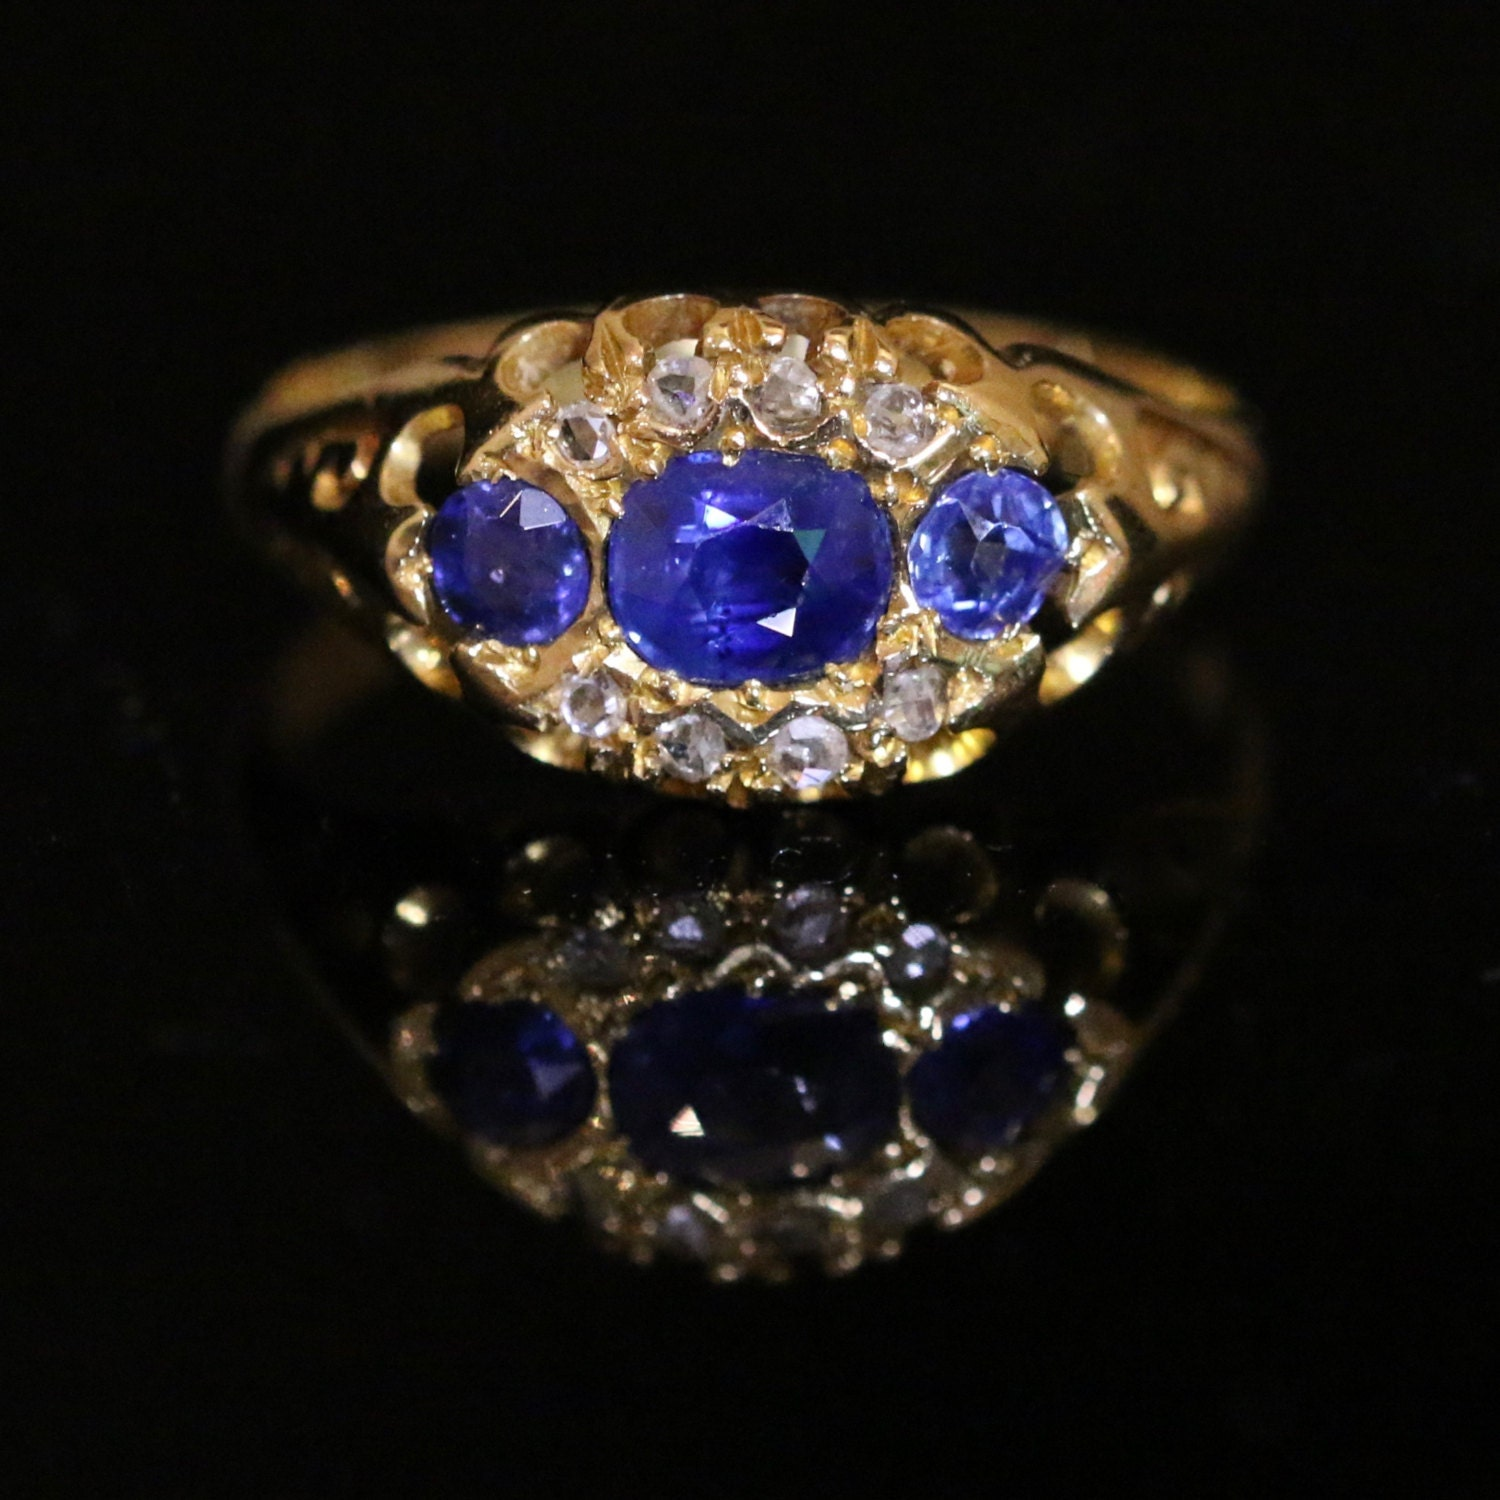 Antique Edwardian Sapphire  Diamond Ring  Dated Chester 1903